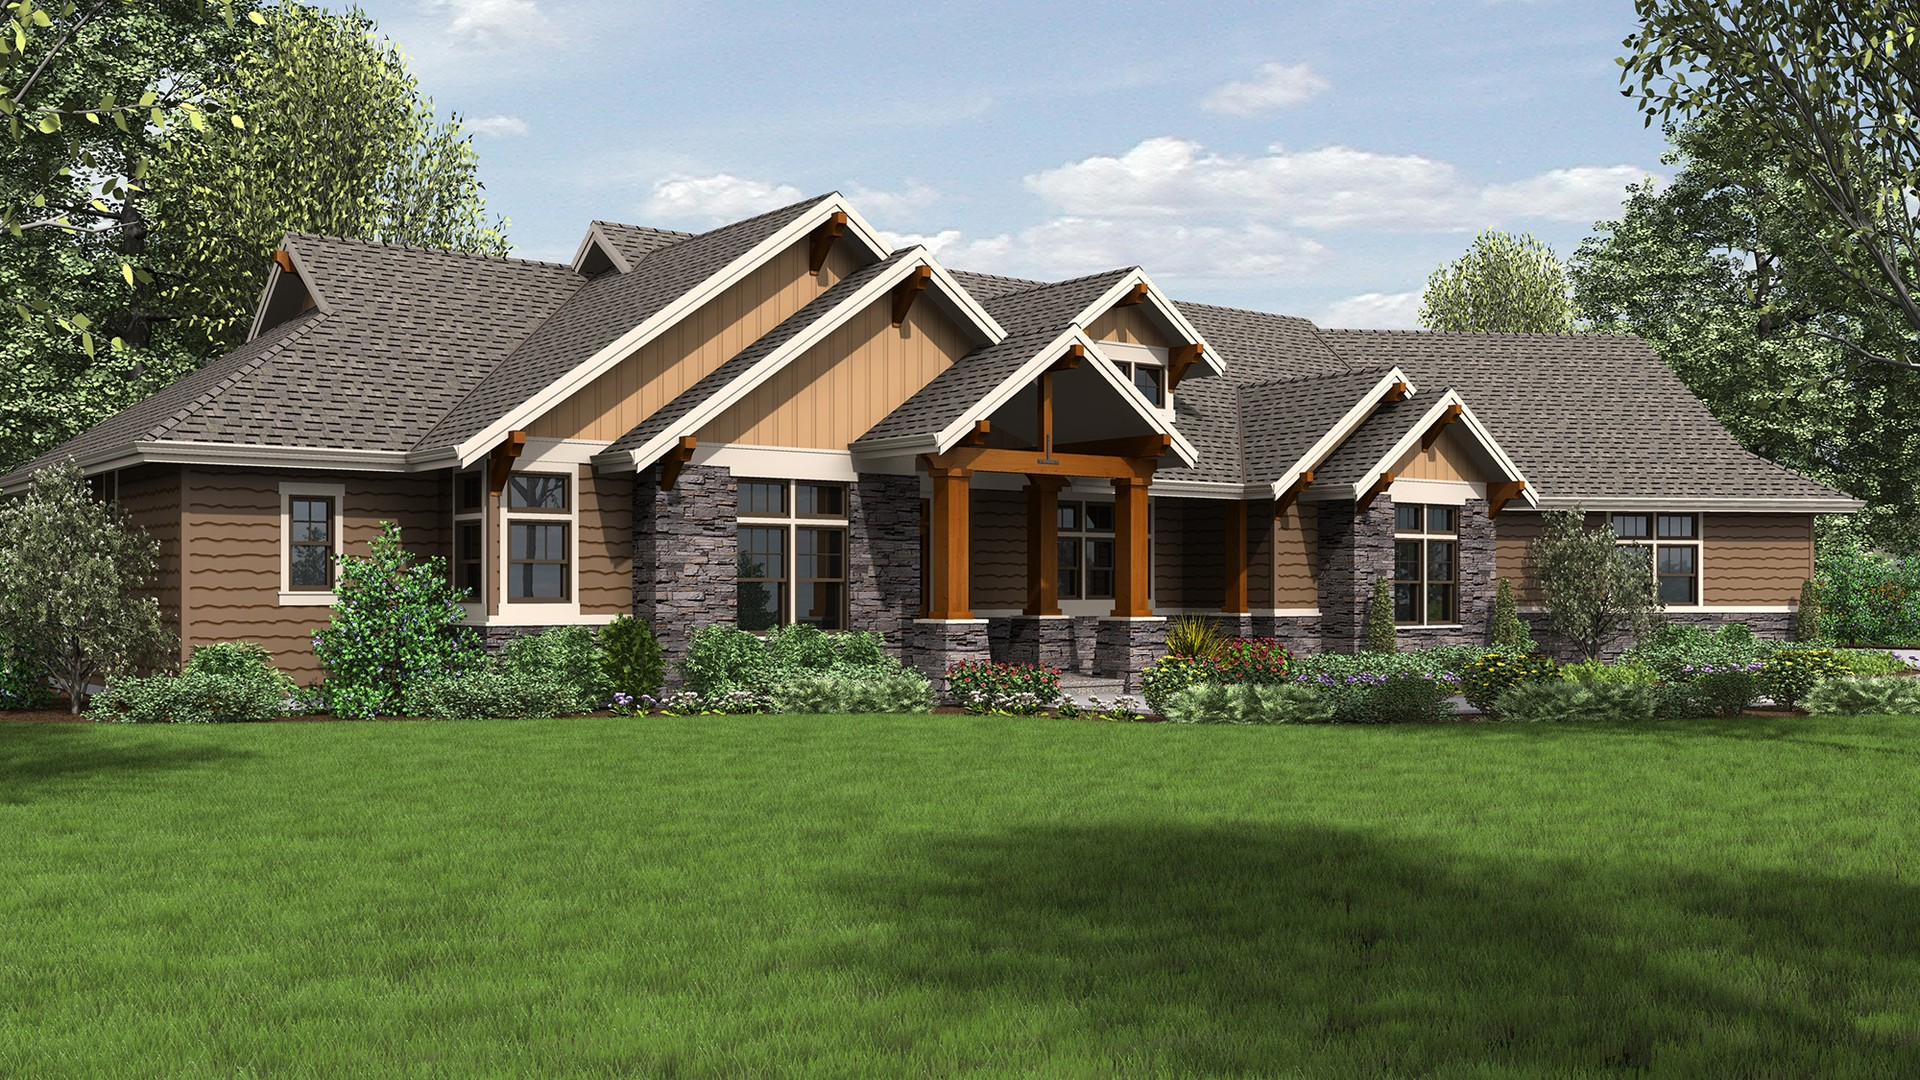 Craftsman House Plan 1250 The Westfall 2910 Sqft 3 Beds